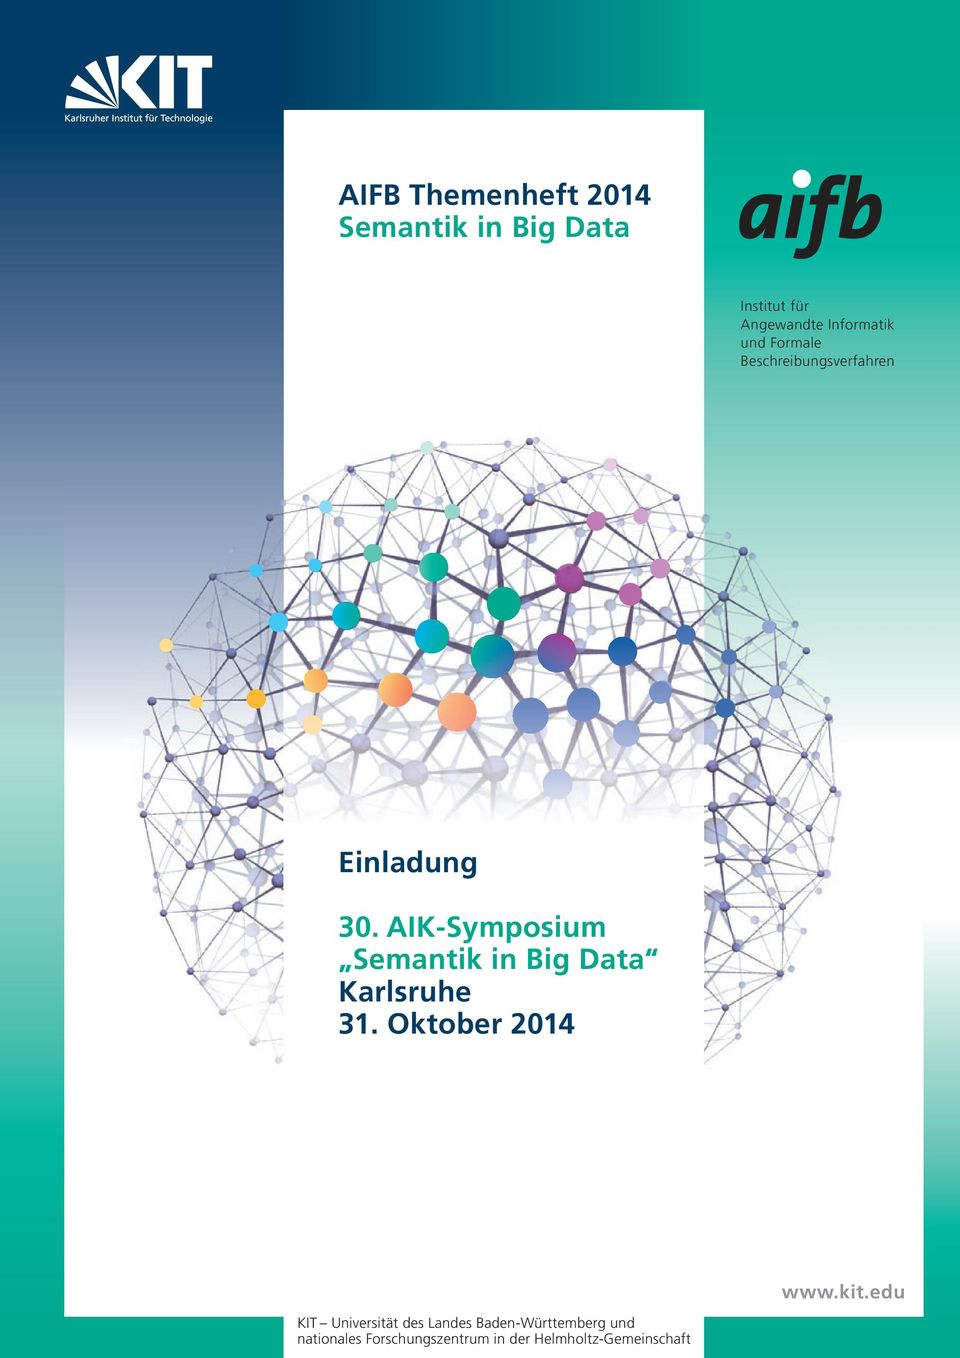 AIK-Symposium Semantik in Big Data Karlsruhe 31. Oktober 2014 www.kit.